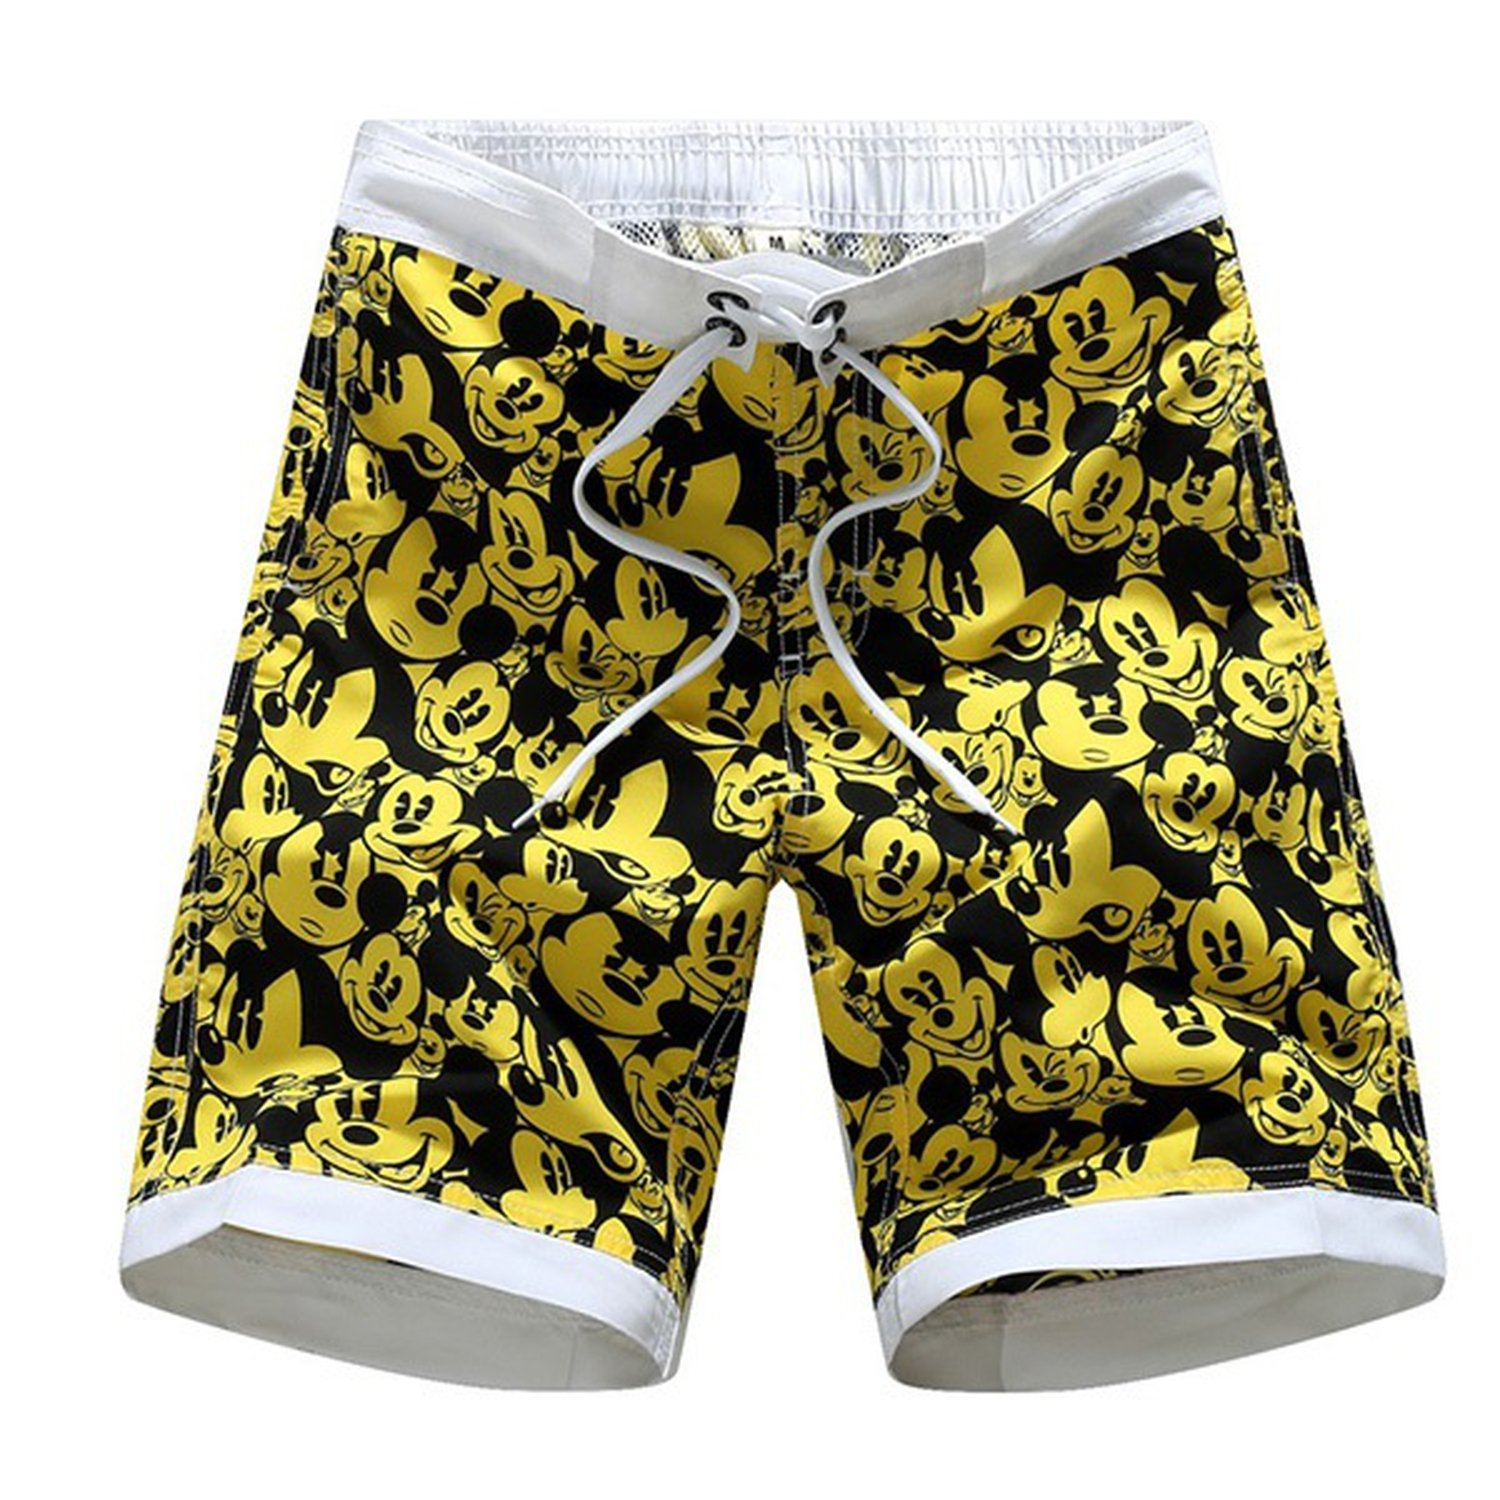 7-14yrs Camouflage Boys Beach Shorts New Fashion Beach Shorts Summer Children Swim Shorts Surf Campaign Quick